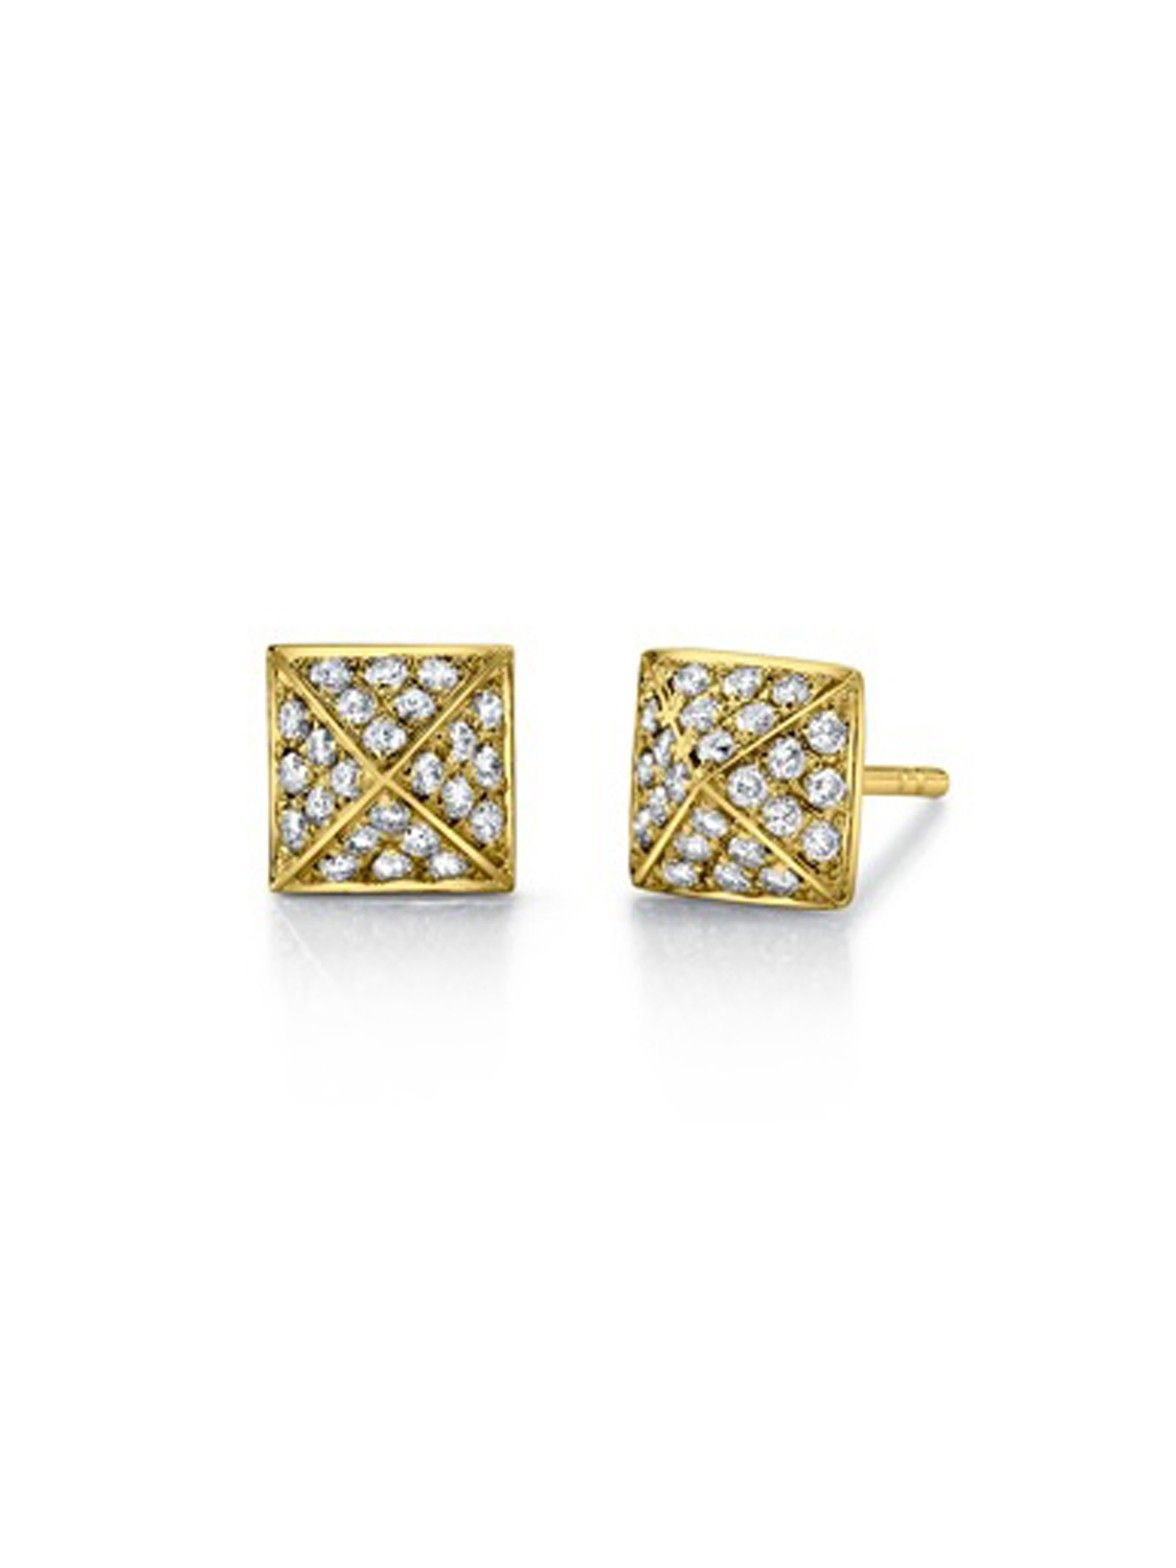 741a317b6 Anita Ko 18k Pave Diamond Small Spike Stud Earrings in Yellow Gold at  London Jewelers!